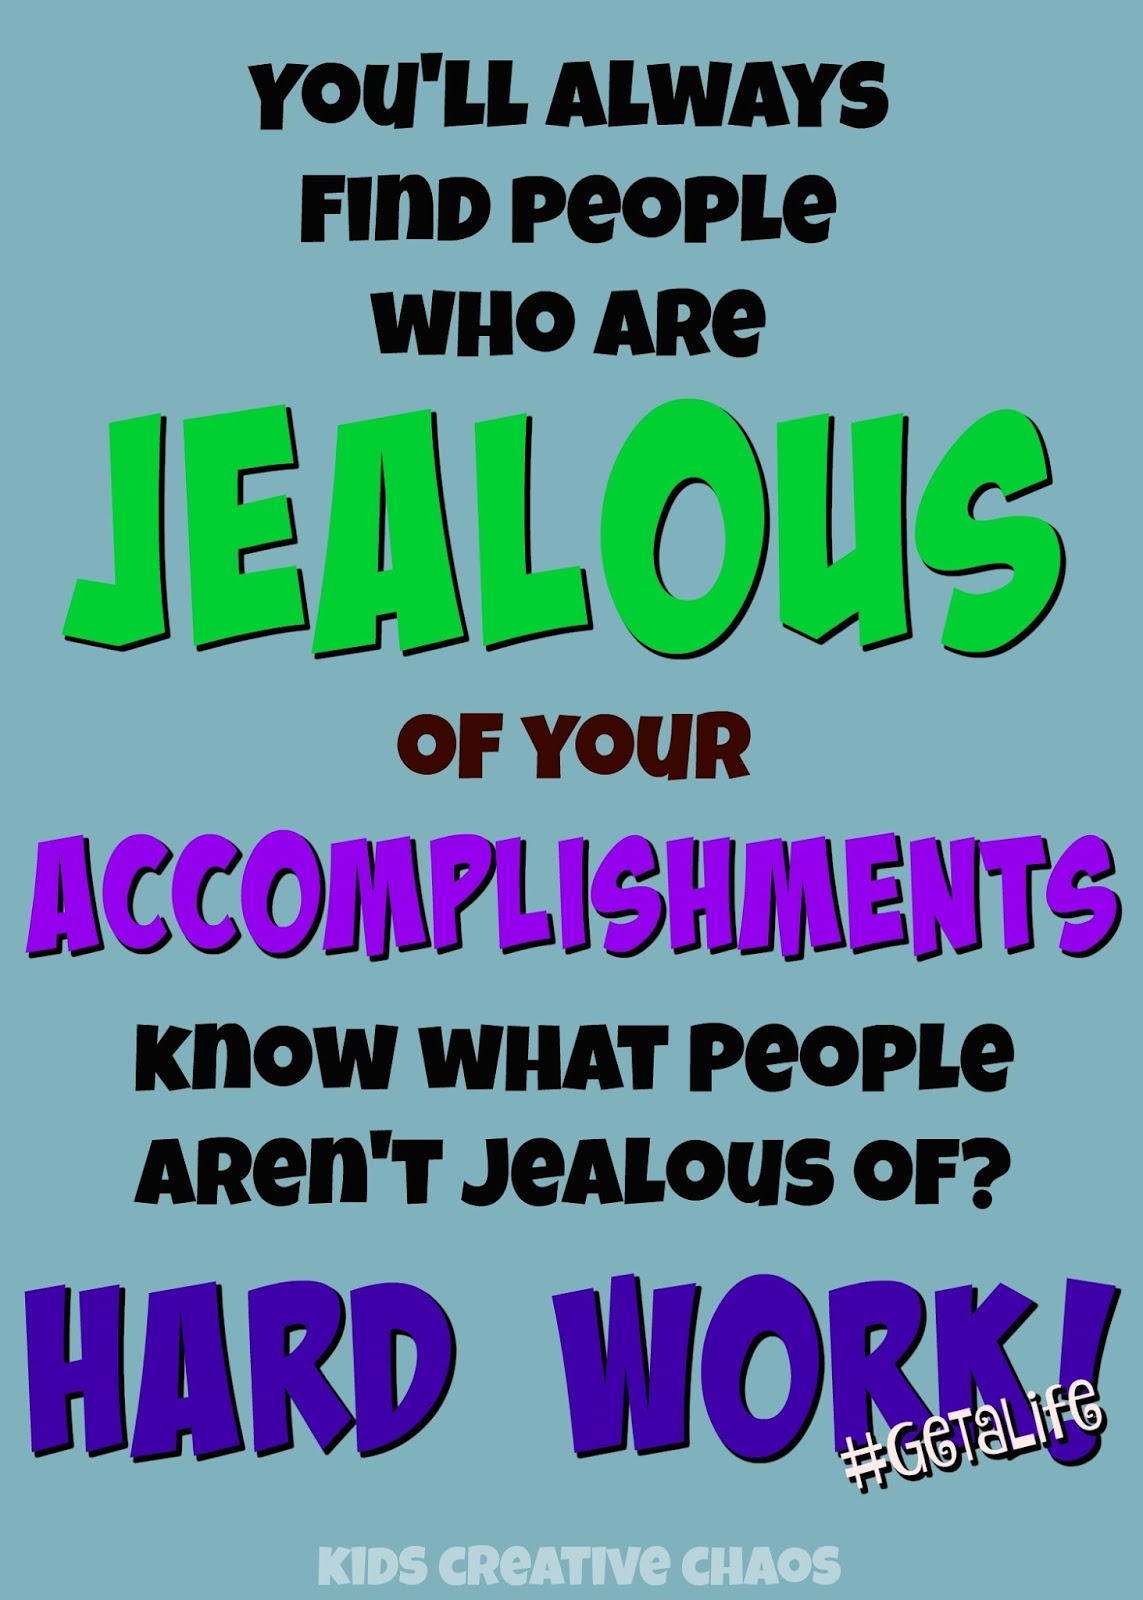 Quotes About Jealous People Jealous Quote People Aren't Jealous Of Hard Work  Kids Creative